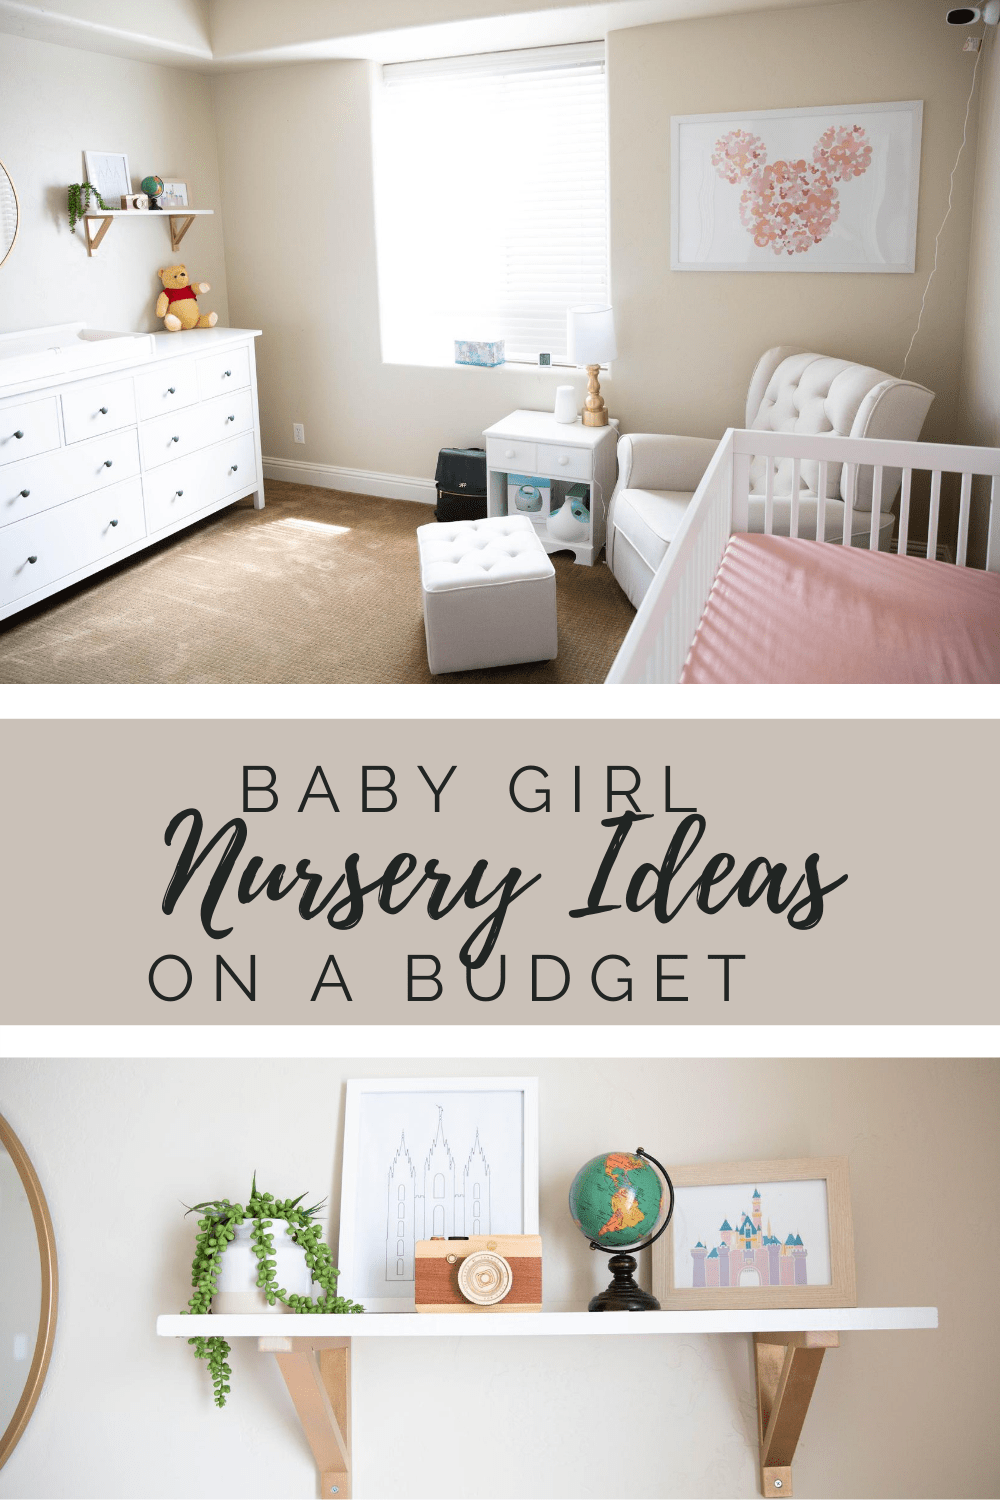 Decorate your nursery on a budget. Easy and simple ways to